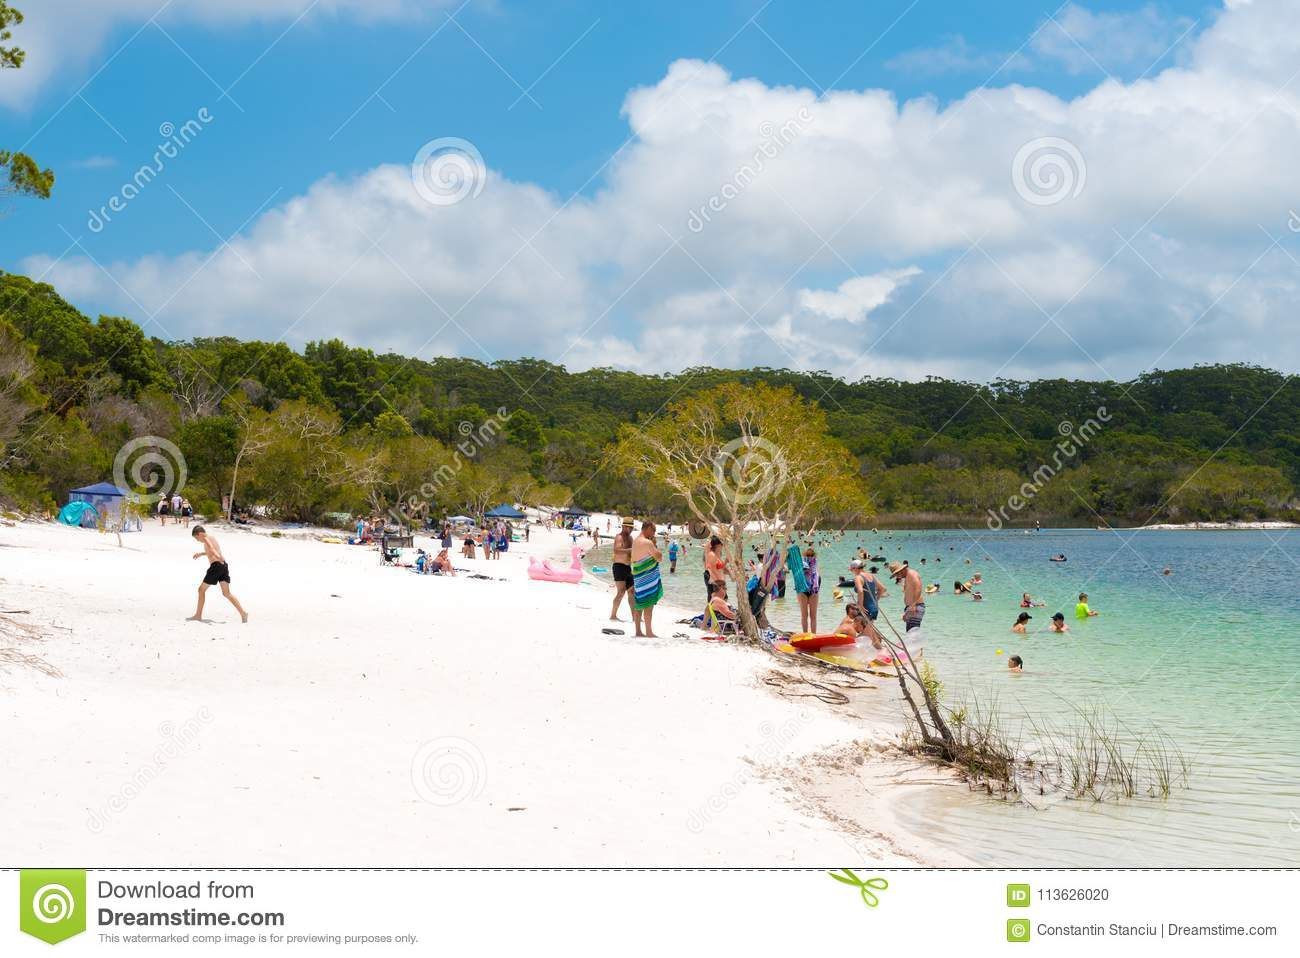 People at the beach at Lake McKenzie, one of the popular freshwater lake at Fraser Island, Australia